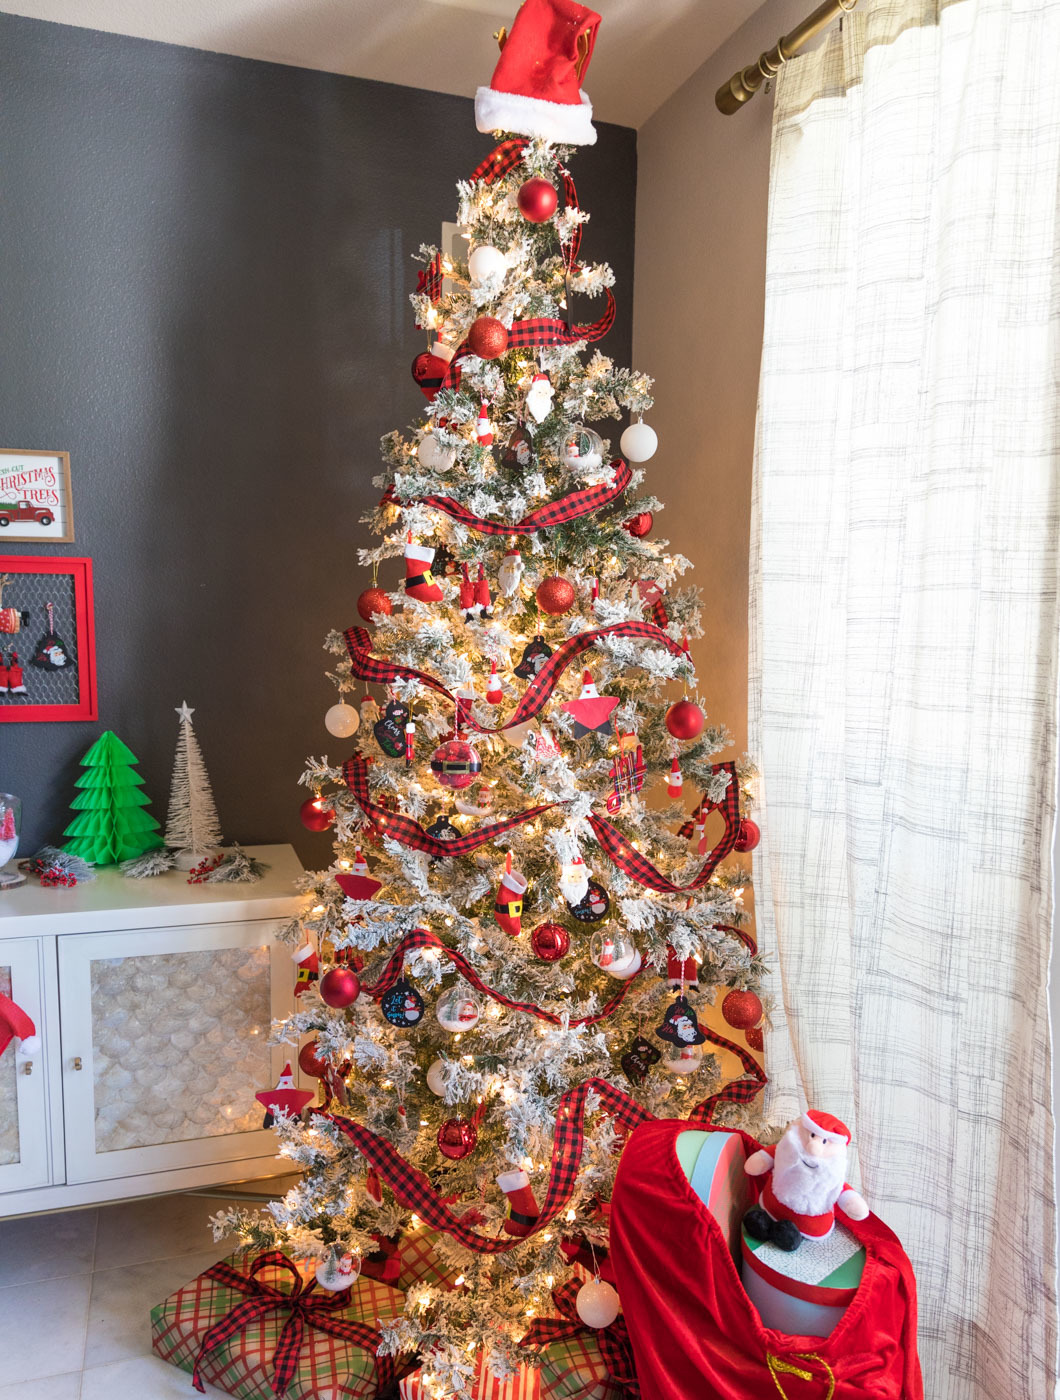 Santa Claus Themed Christmas Tree and Decor